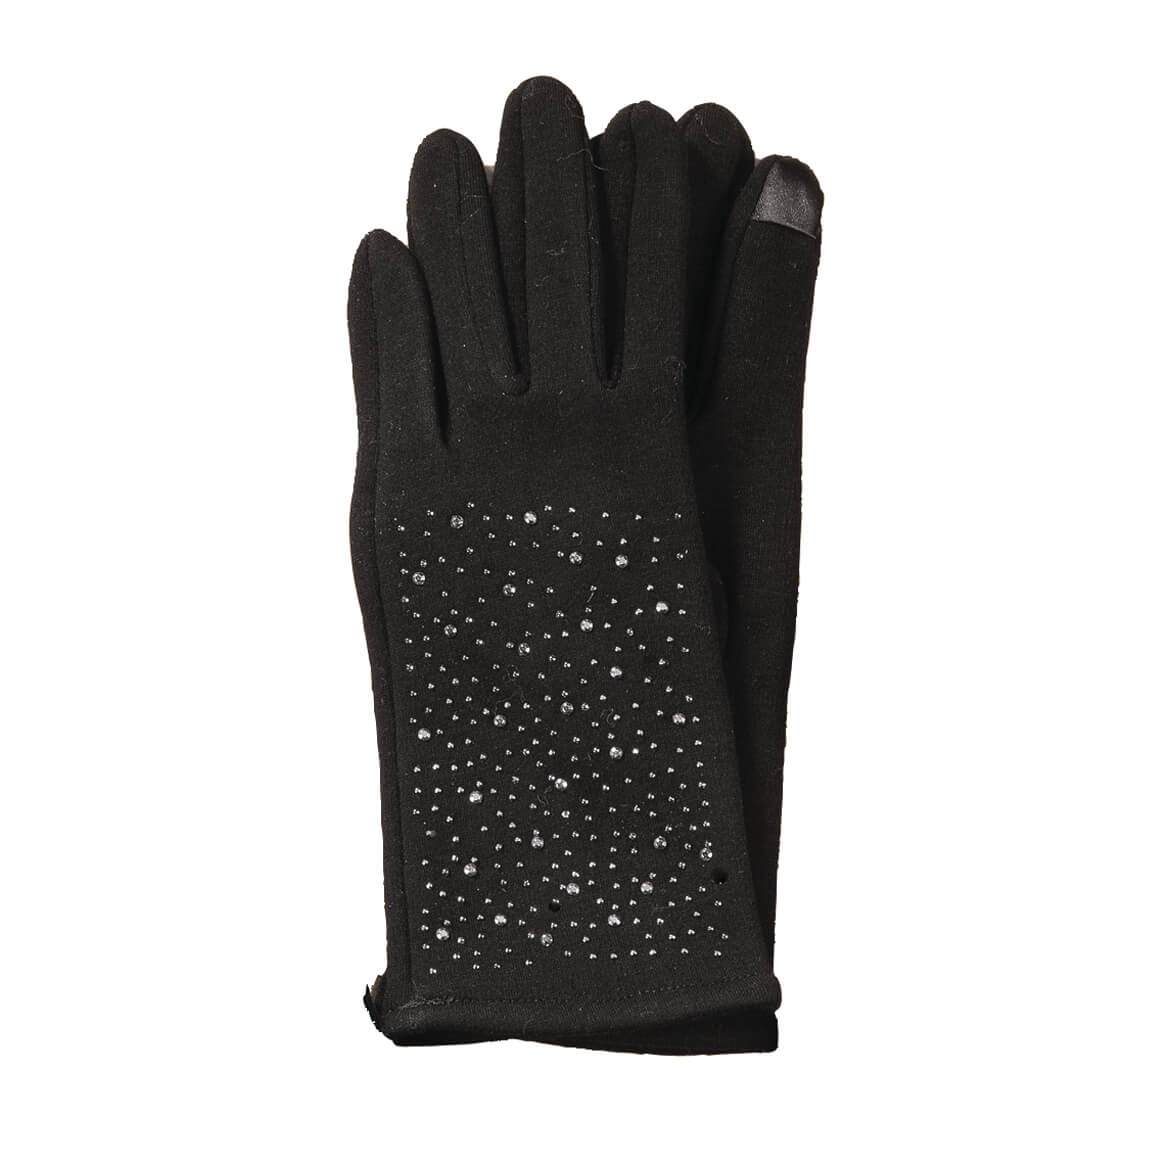 Jack & Missy™ Fleece Gloves